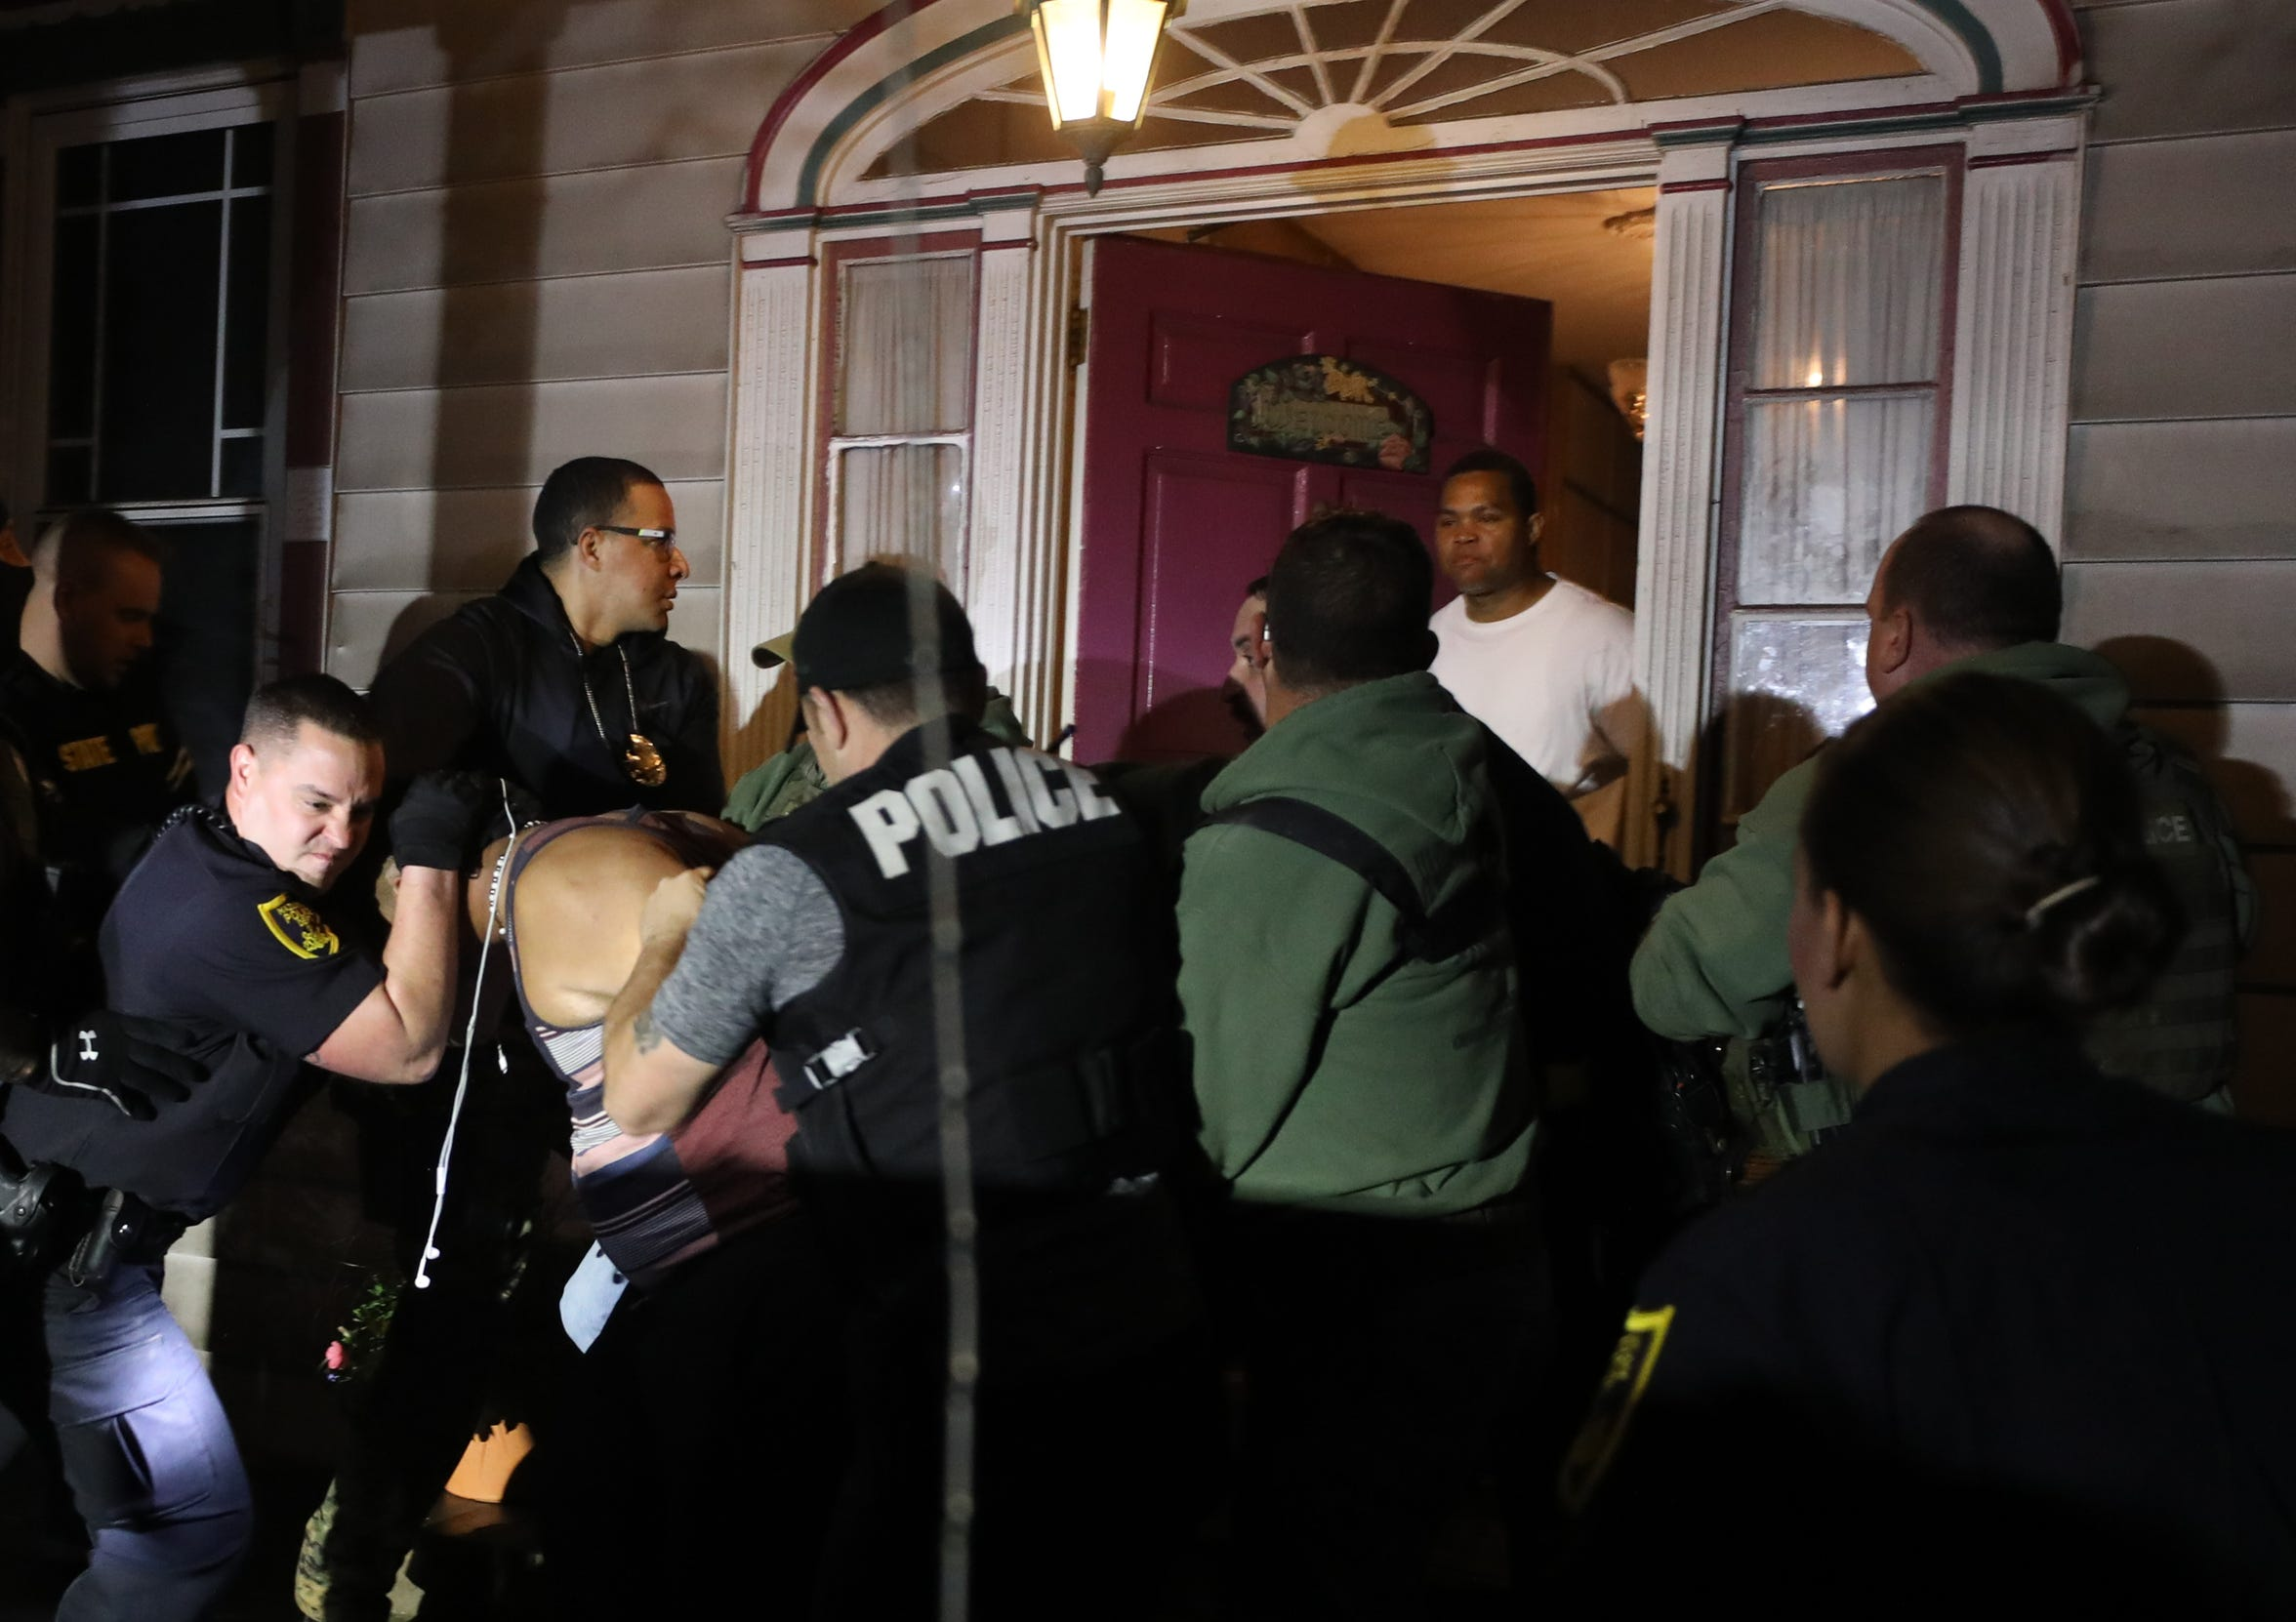 """More than two dozen officers swarmed a Victorian house in Hazleton in May that was hosting an illegal after-hours party, largely attended by Hispanic residents with ties to the Dominican Republic.  """"I've been saying for years, we need to inform the people moving here from the Dominican Republic what our local laws are,"""" said Jeff Cusat, Hazleton's Republican mayor."""